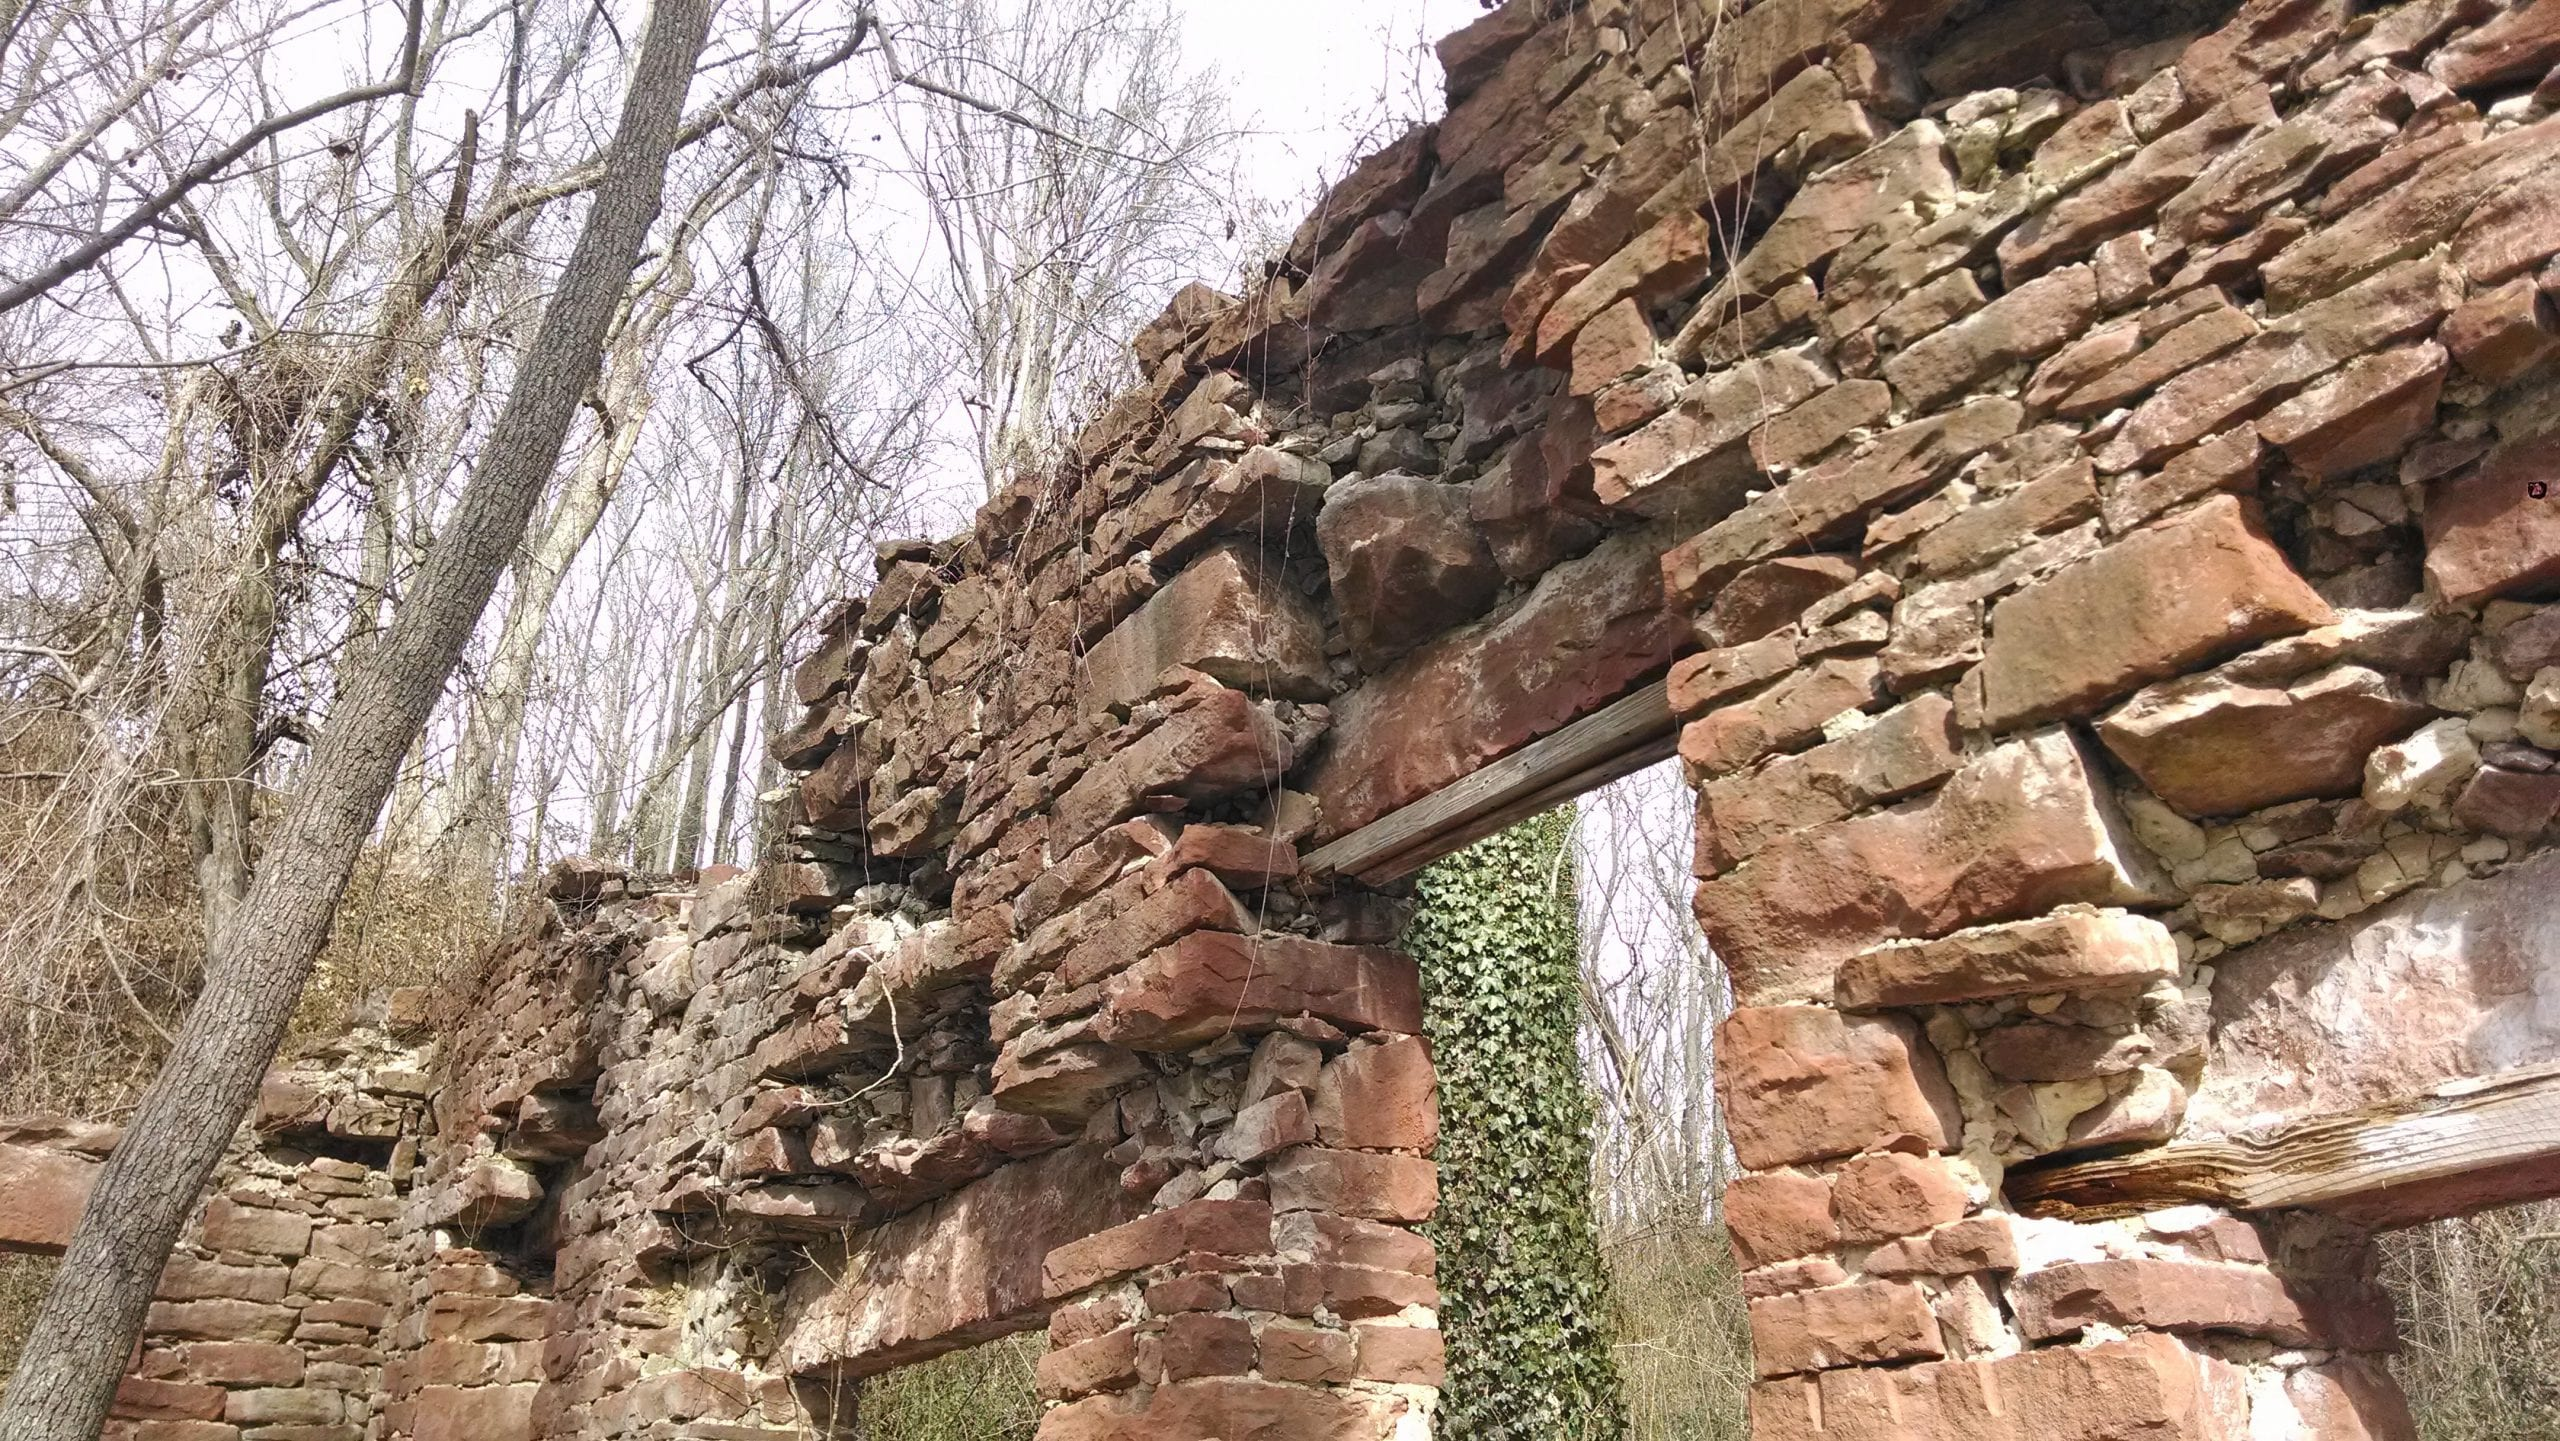 Visit the Ruins of Seneca Quarry (Yes, Real Ruins!)